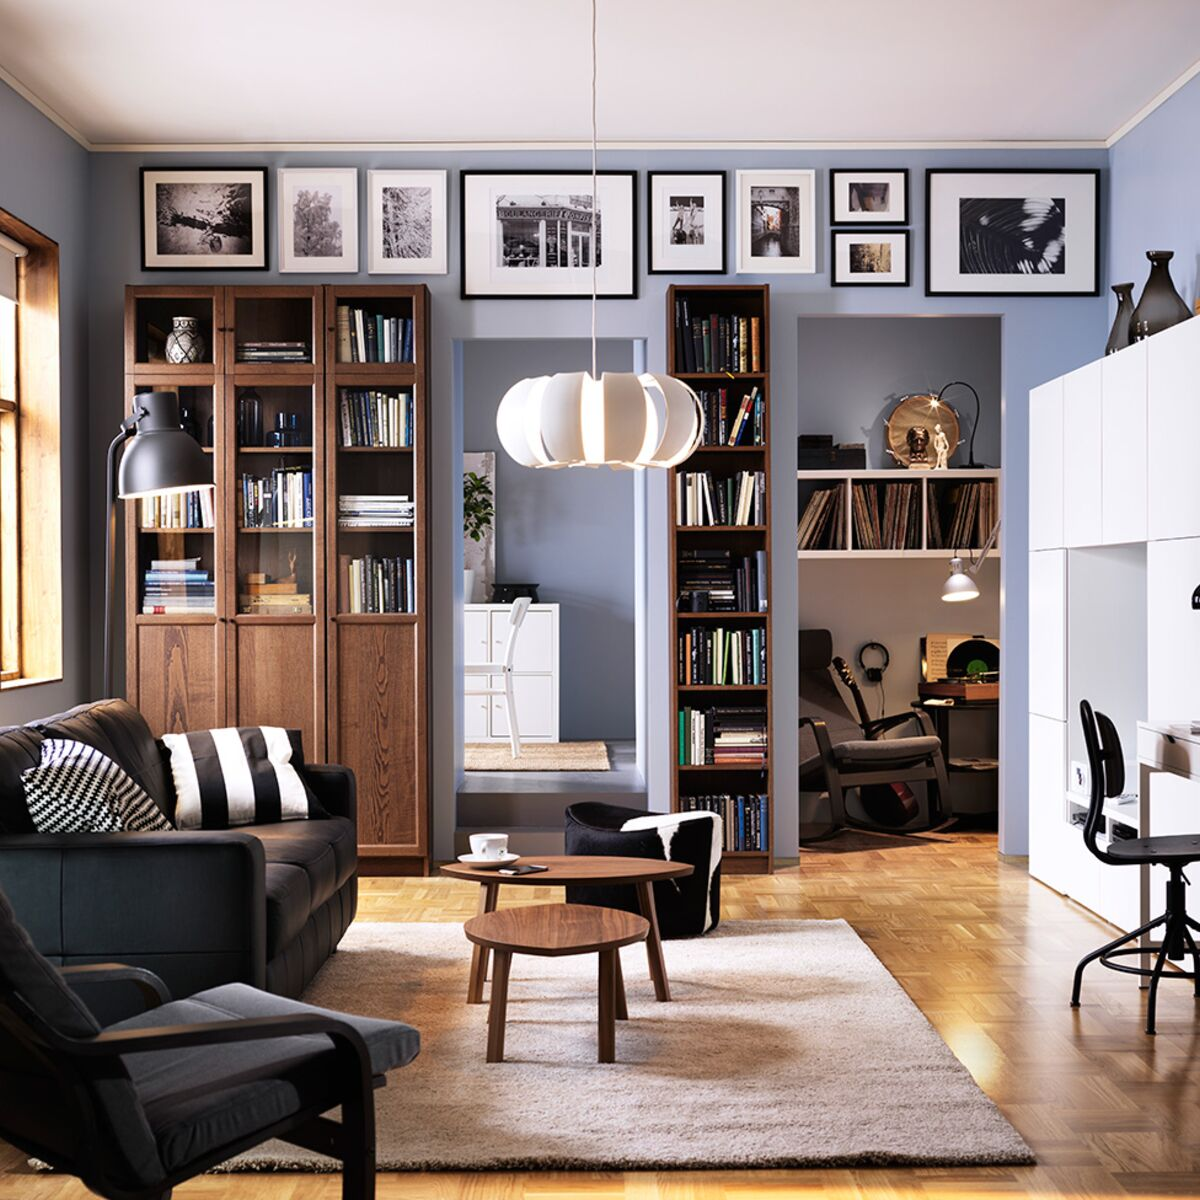 bibliotheque ikea les modeles qu on